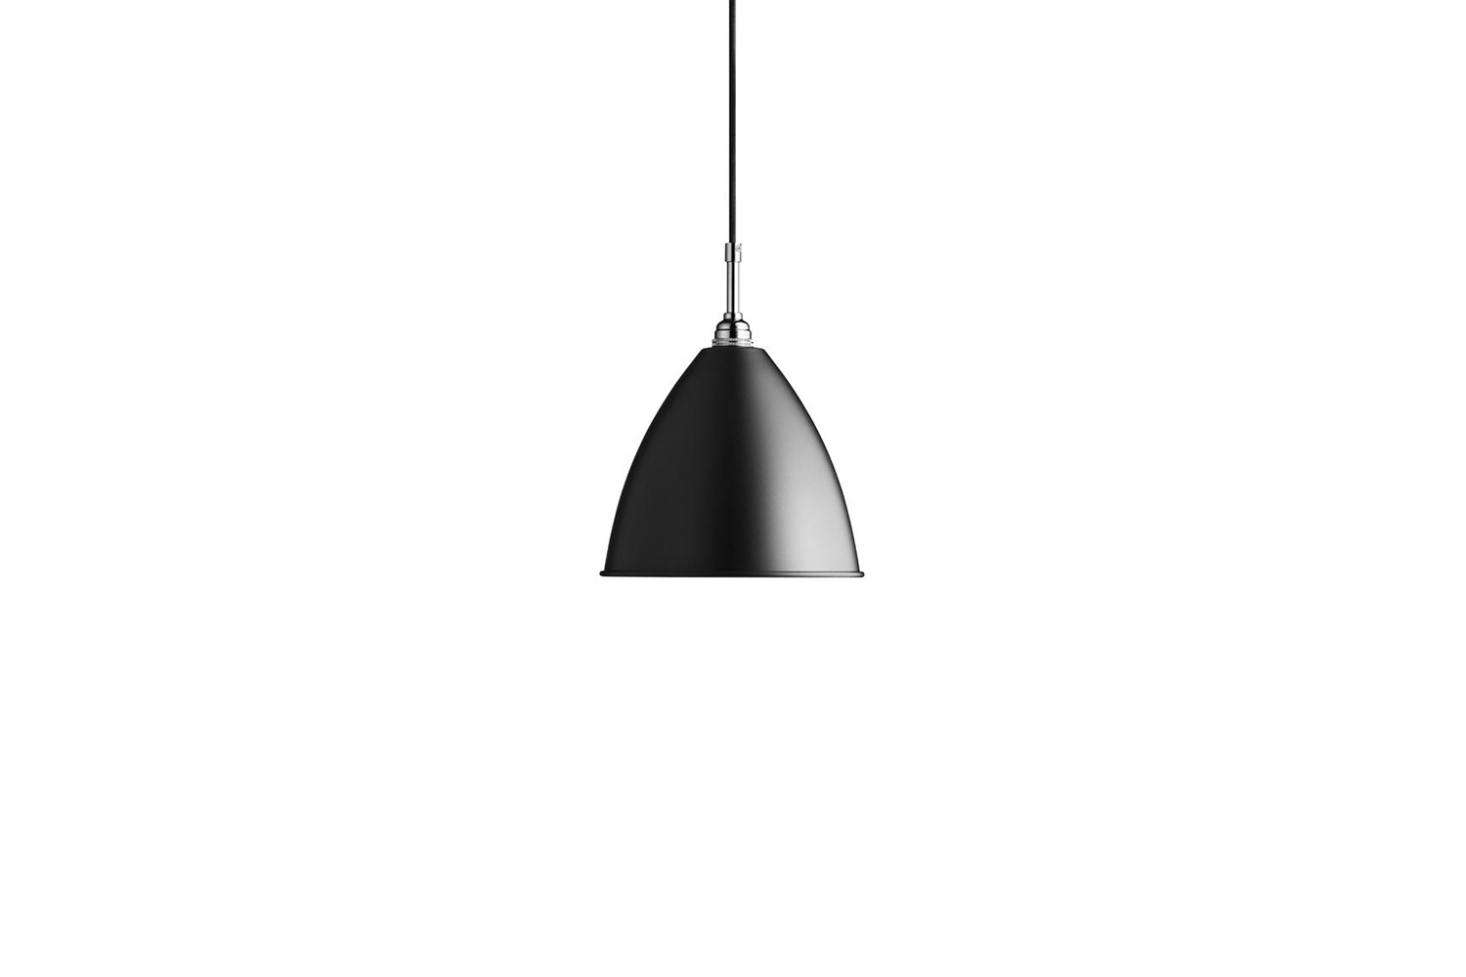 The pendant lights in the kitchen are Bestlite BL9M Pendants in chrome and matte black; $369 at Horne.